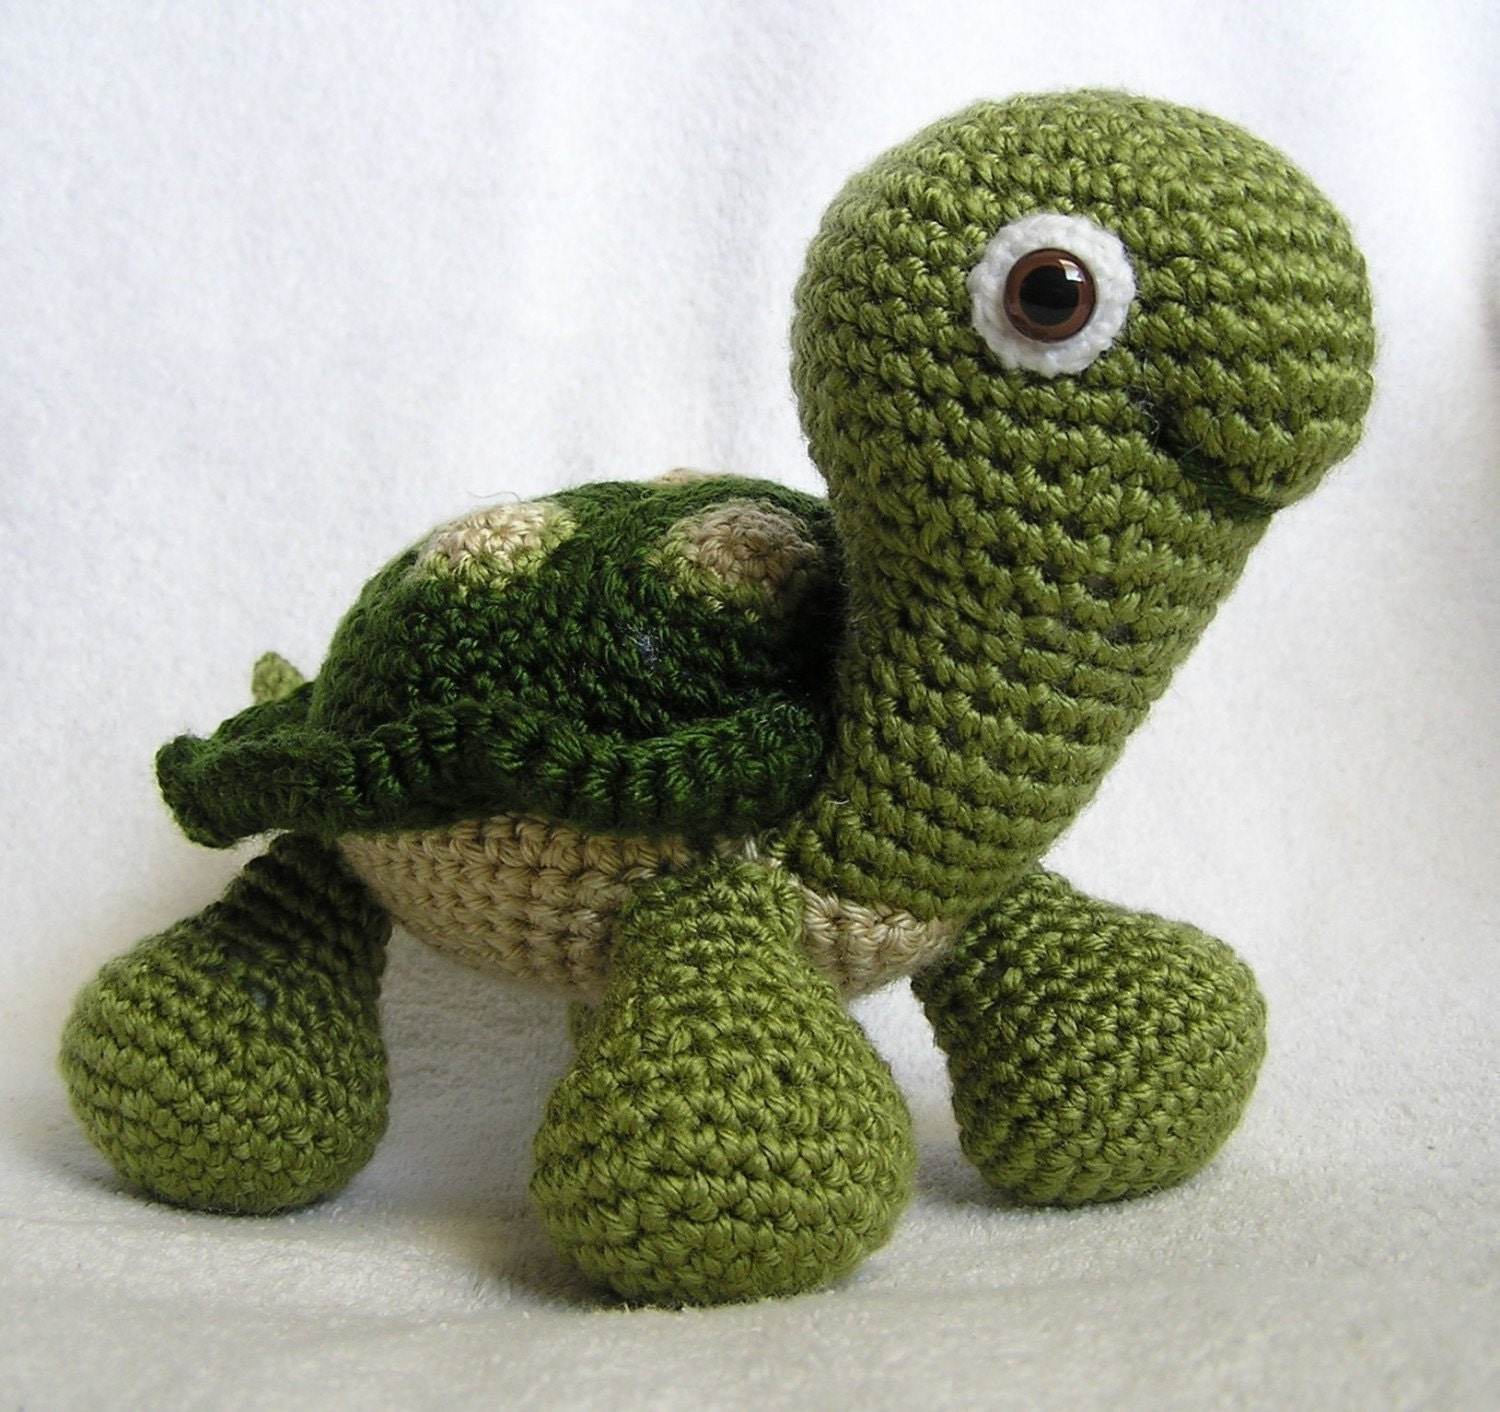 ... great for gifts or just to snuggle with. List of free crochet turtle